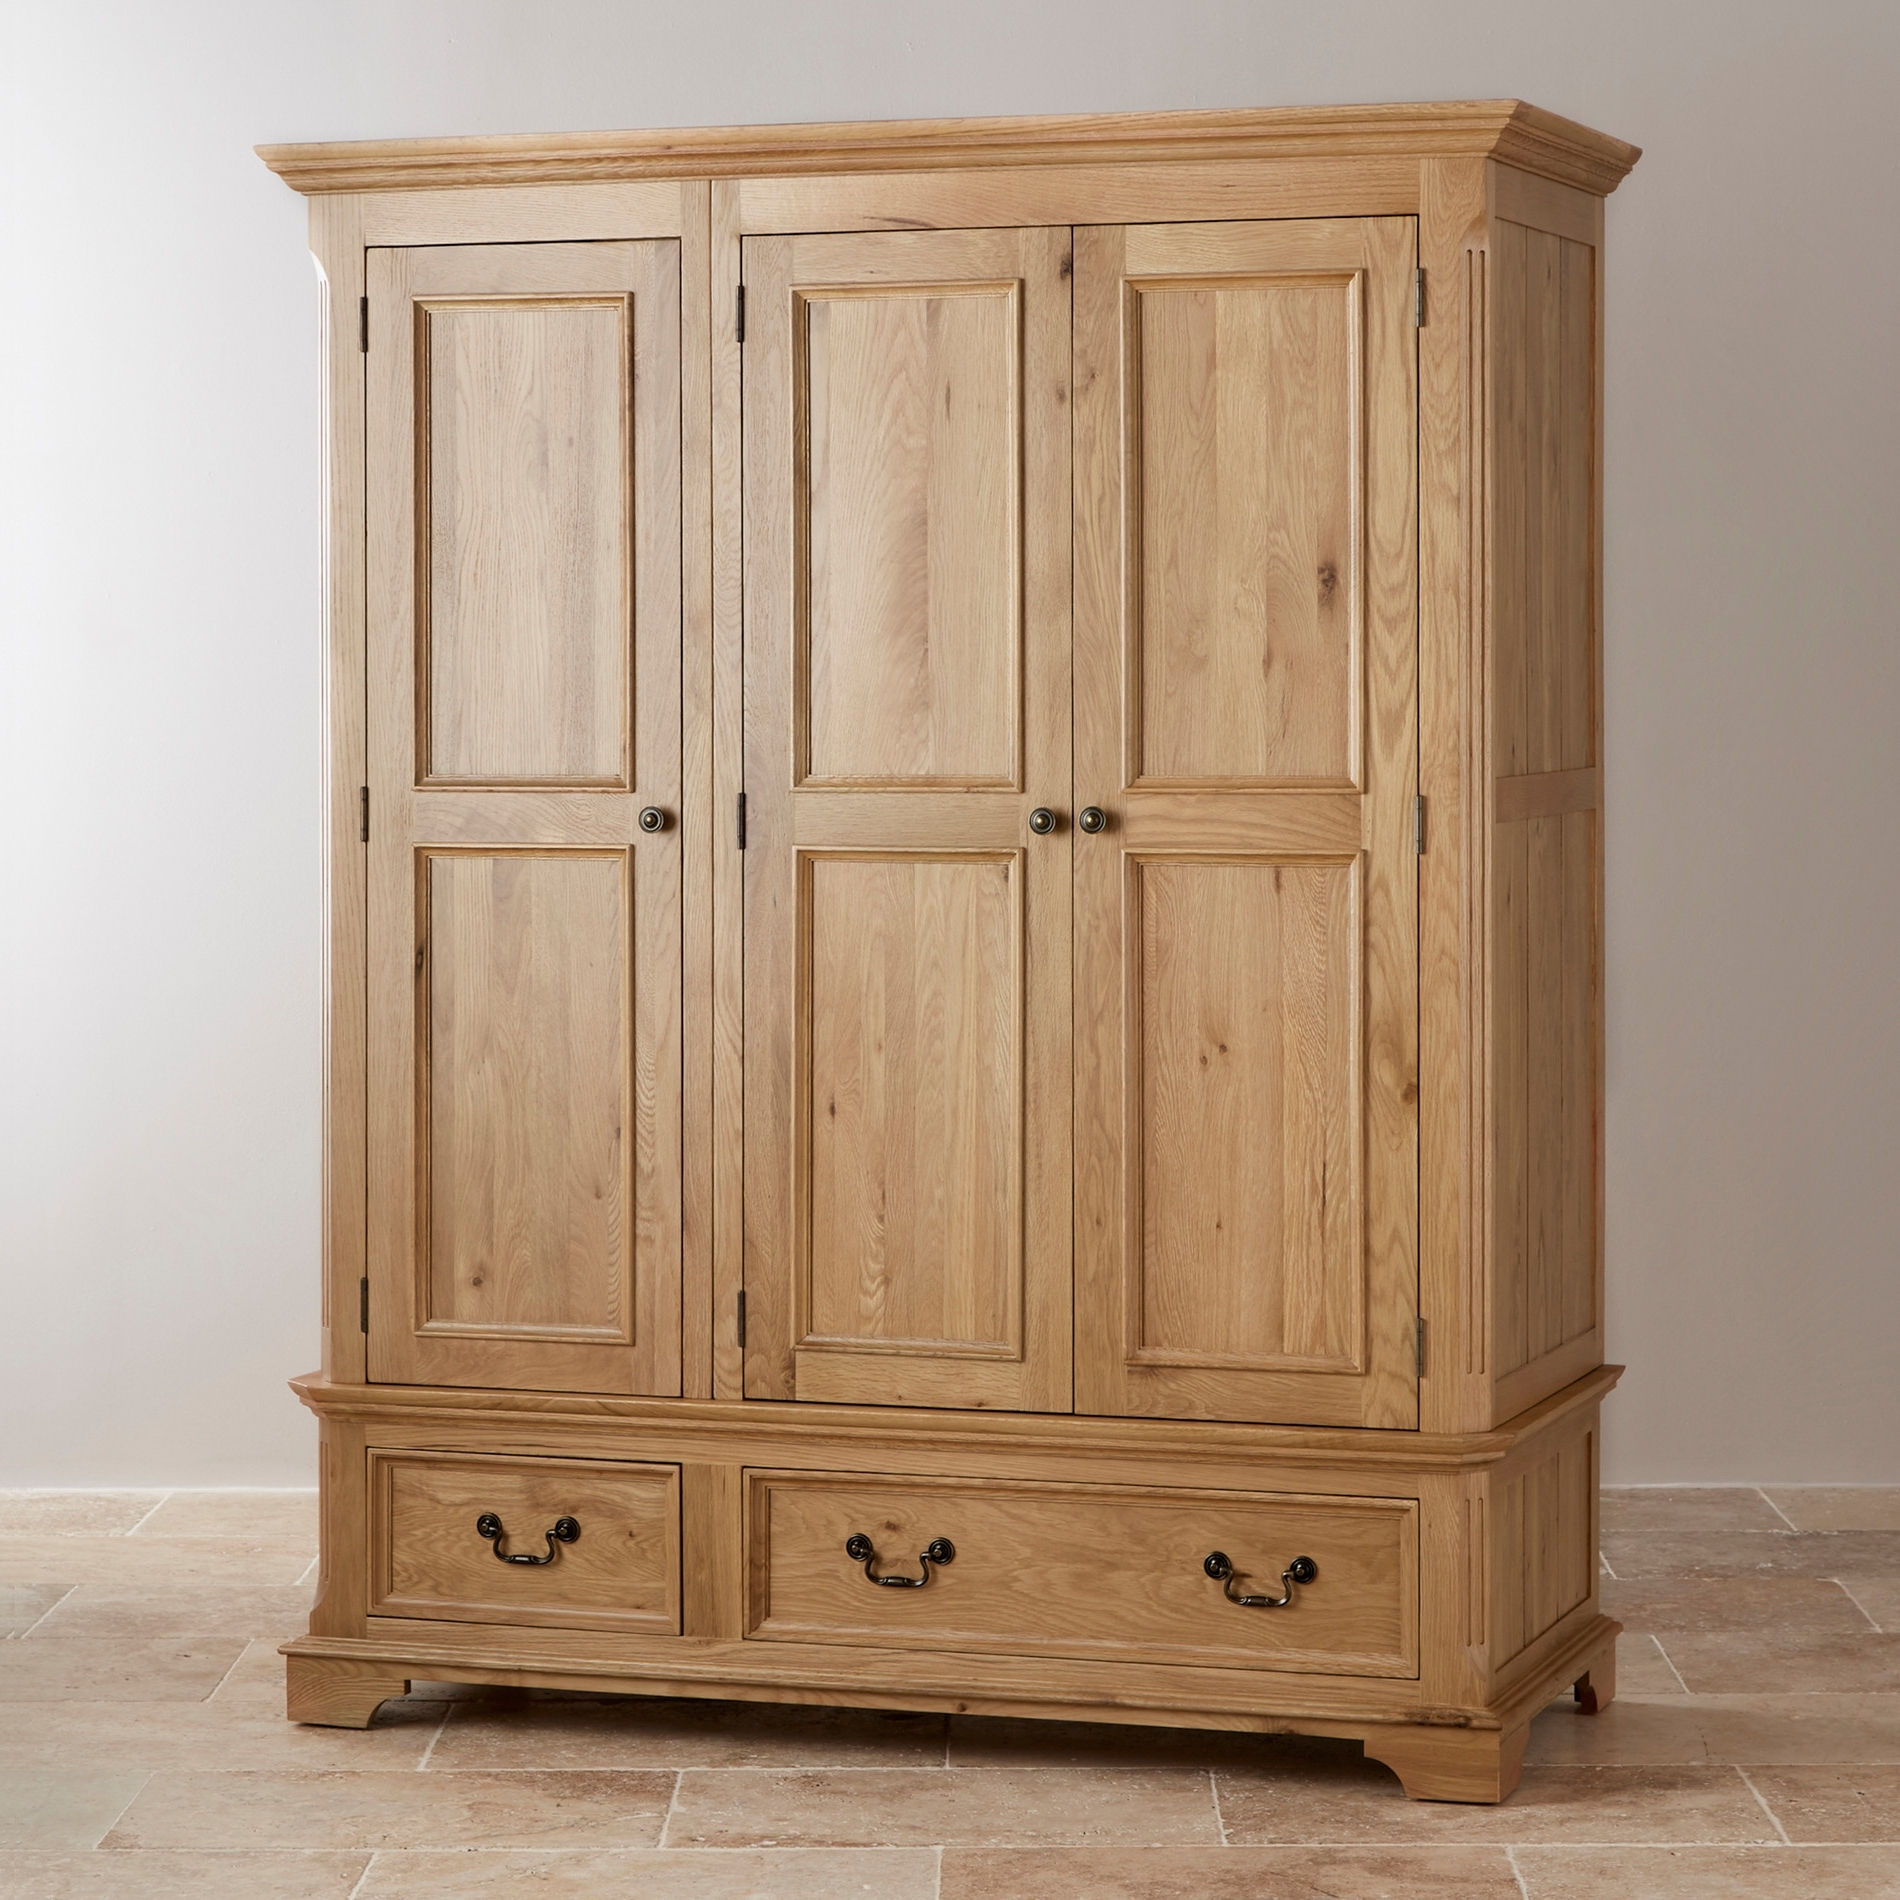 Oak Furniture Land Throughout Triple Oak Wardrobes (View 9 of 15)